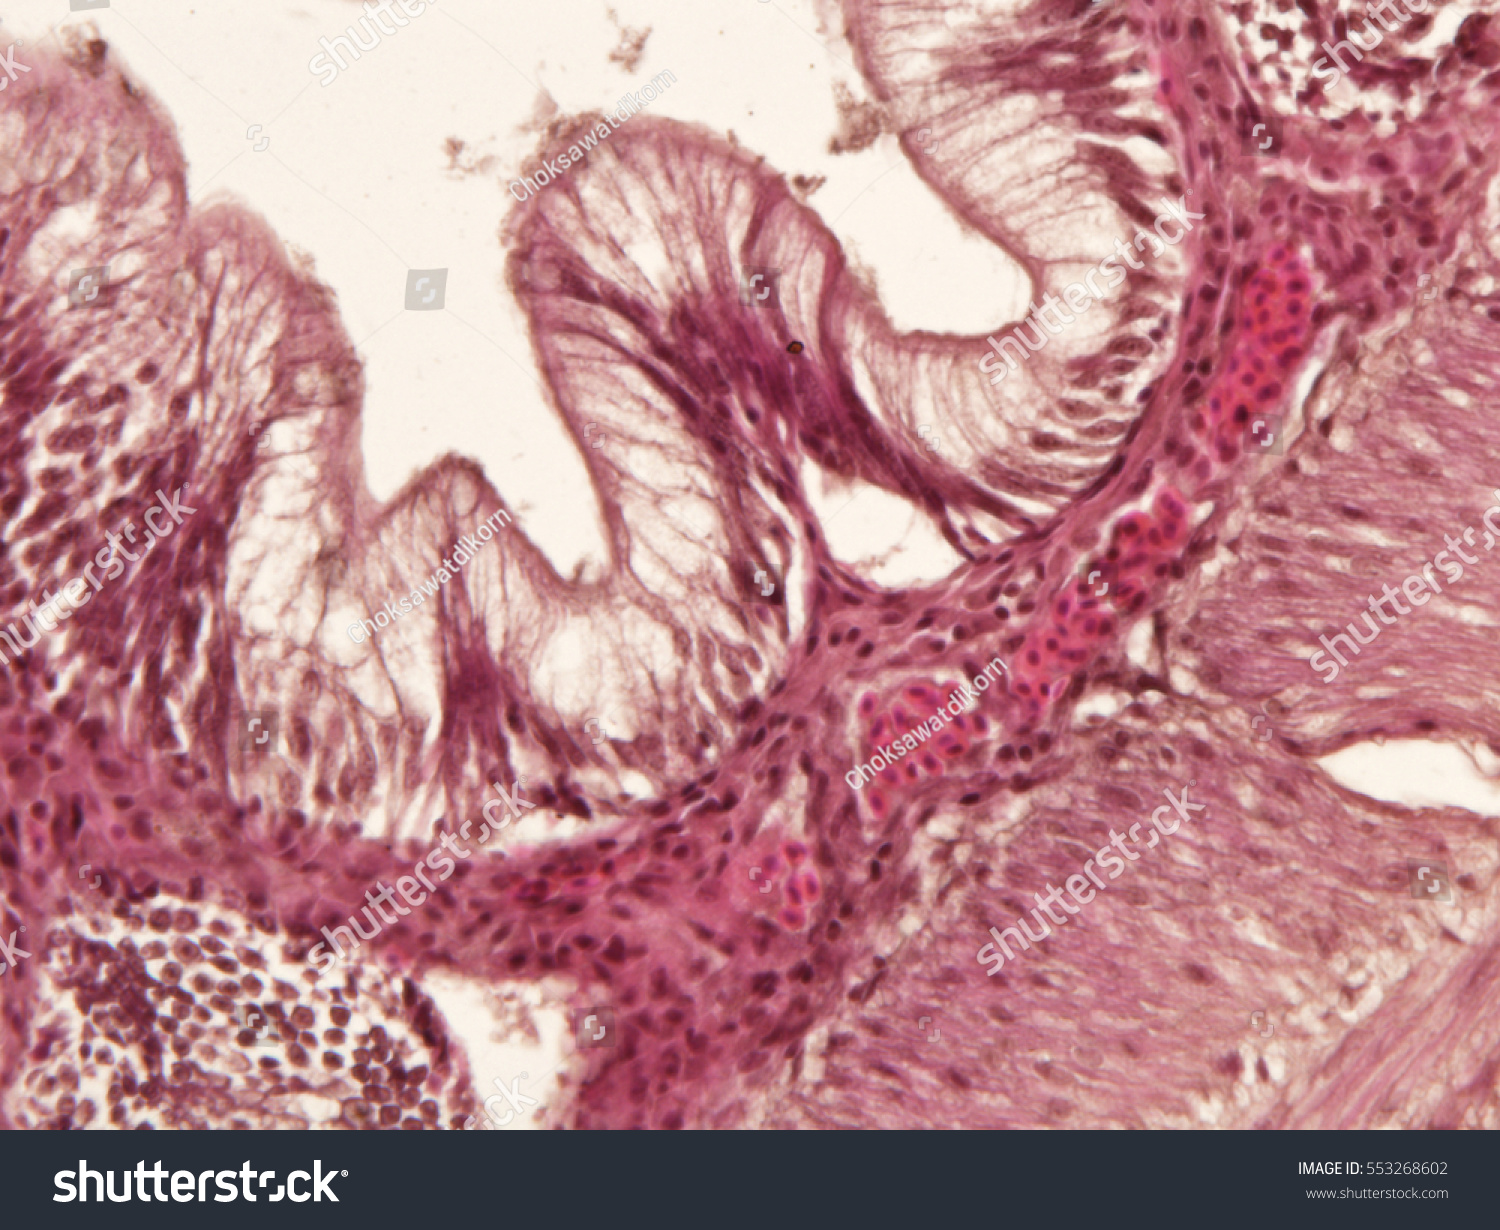 Intestine Animal Tissue Under Microscope View Stock Photo